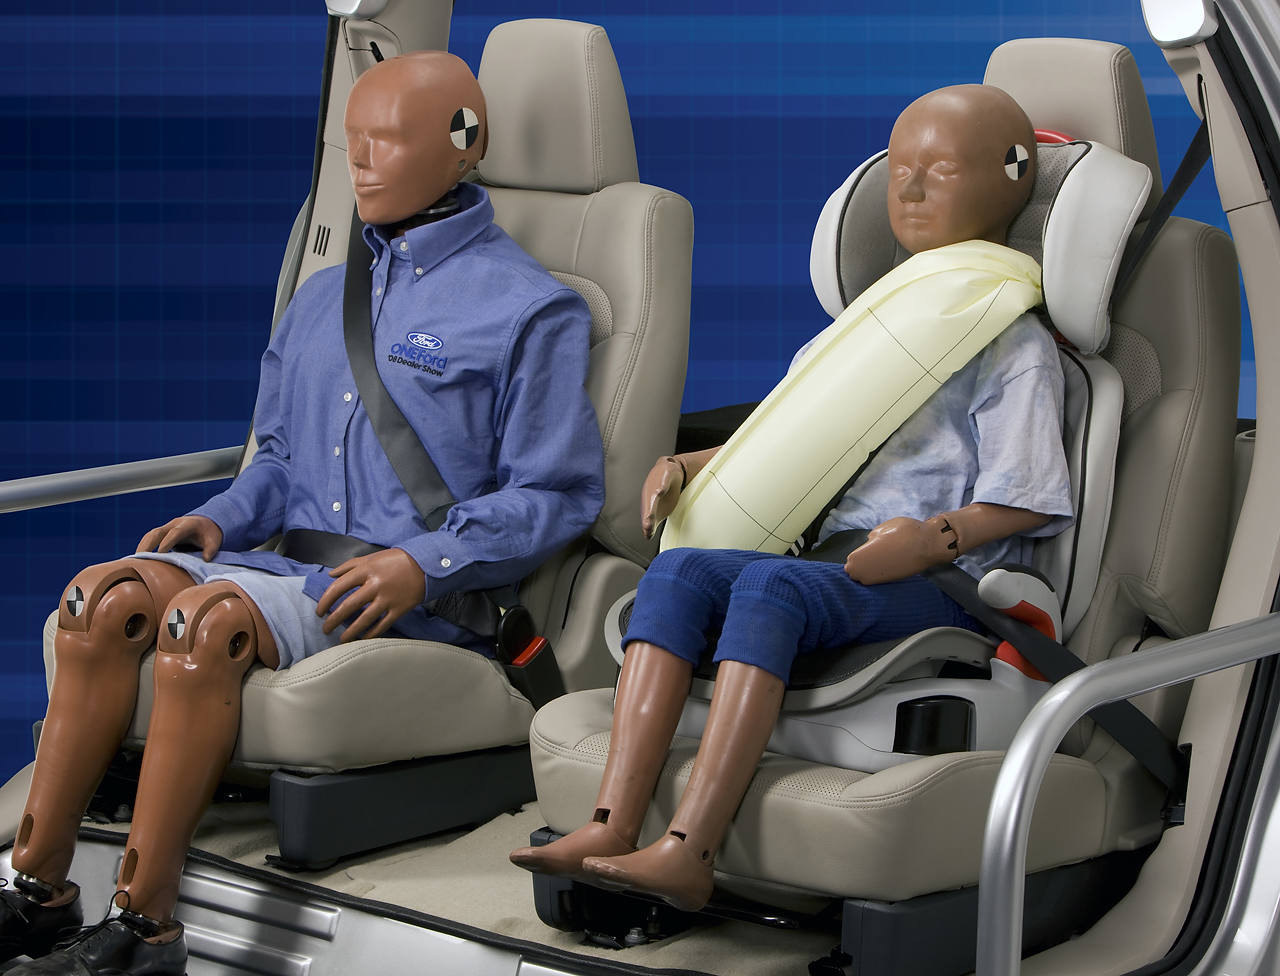 Ford_Revealed_Inflatable_Seatbelt_03.JPG